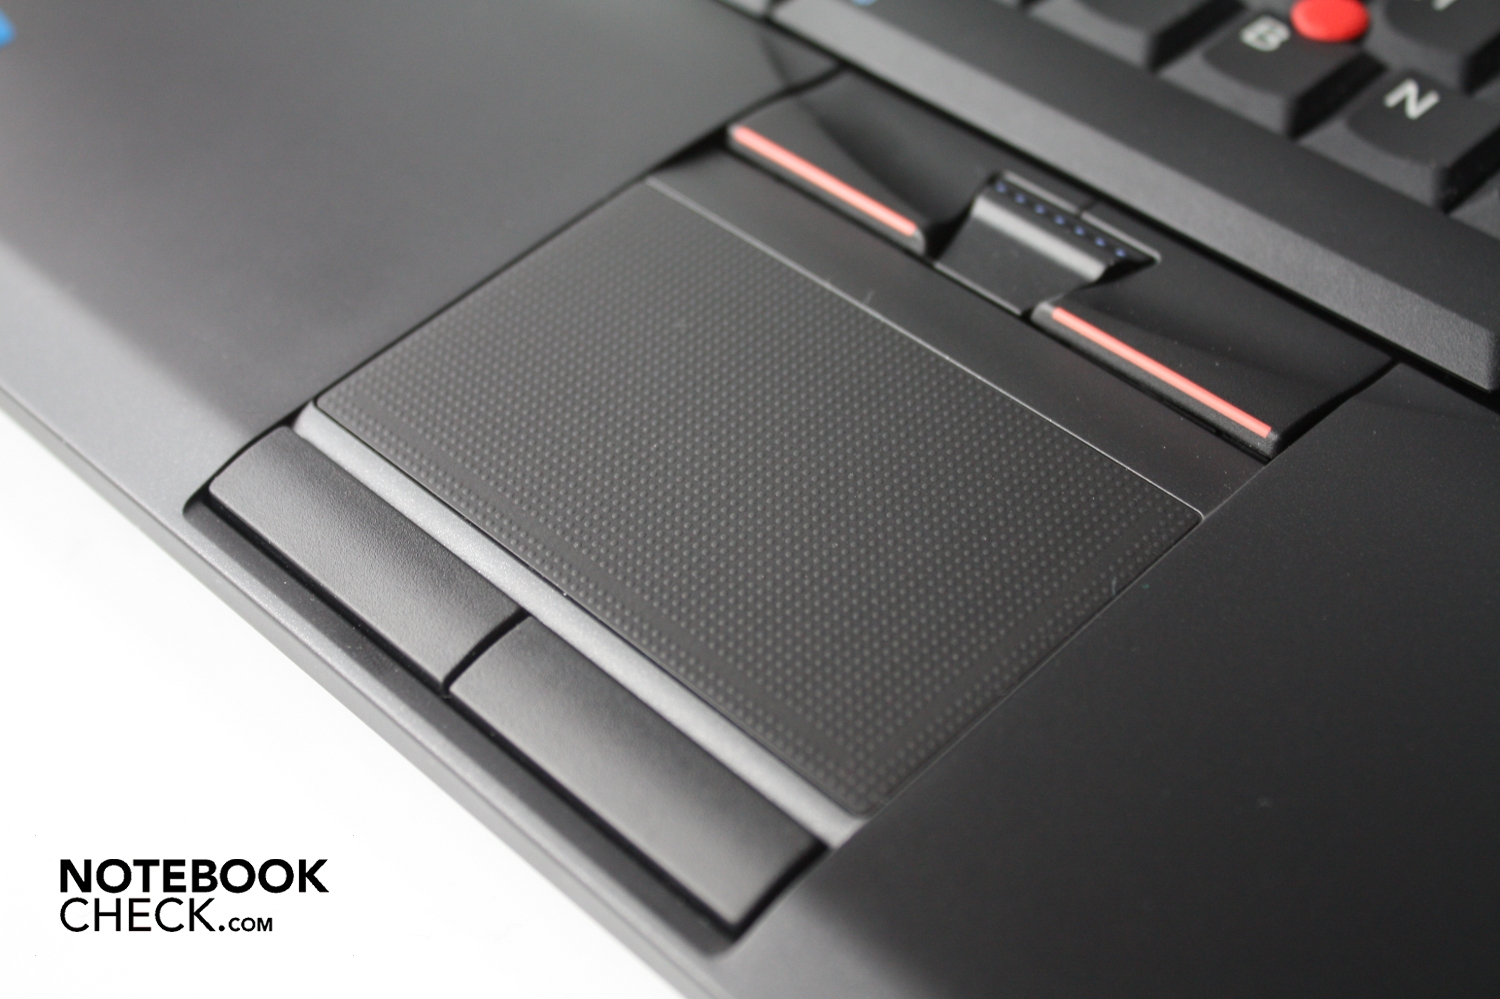 Review Lenovo ThinkPad SL510 Notebook - NotebookCheck net Reviews